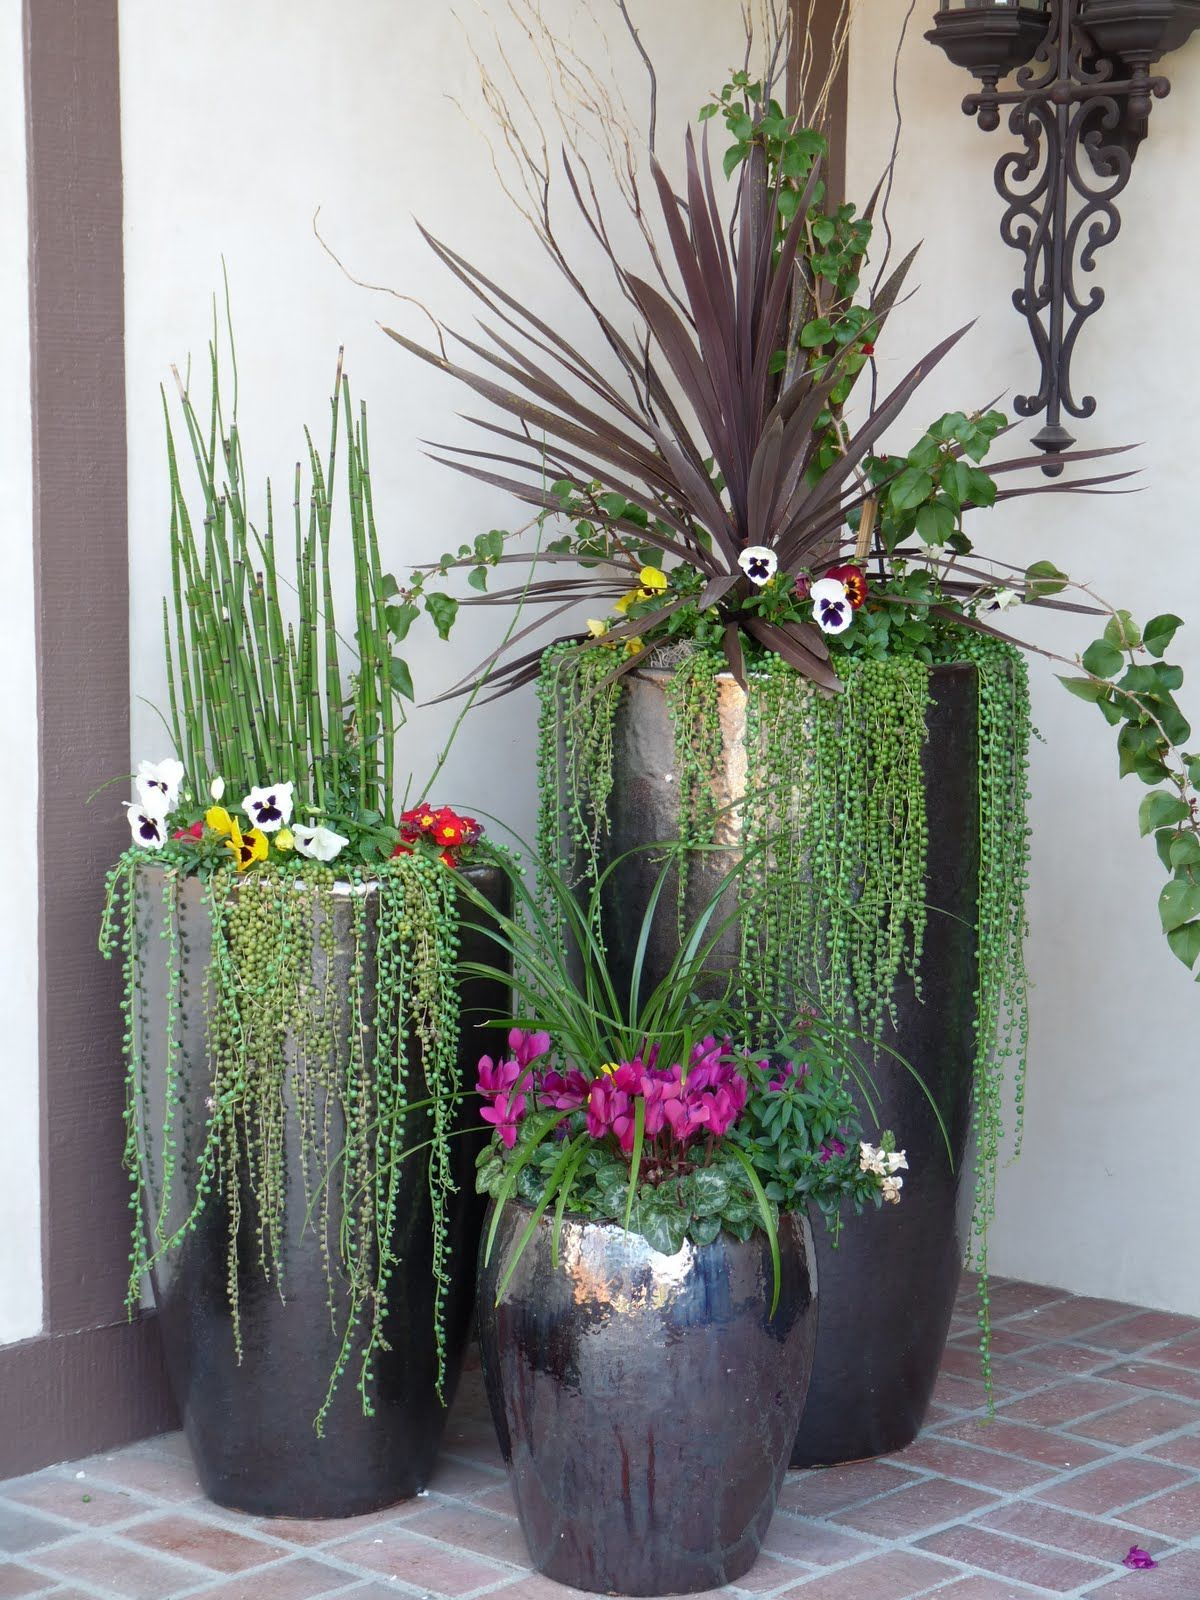 Merveilleux Outdoor Potted Plants For The Home Insipiration With String Of Pearls  Succulents